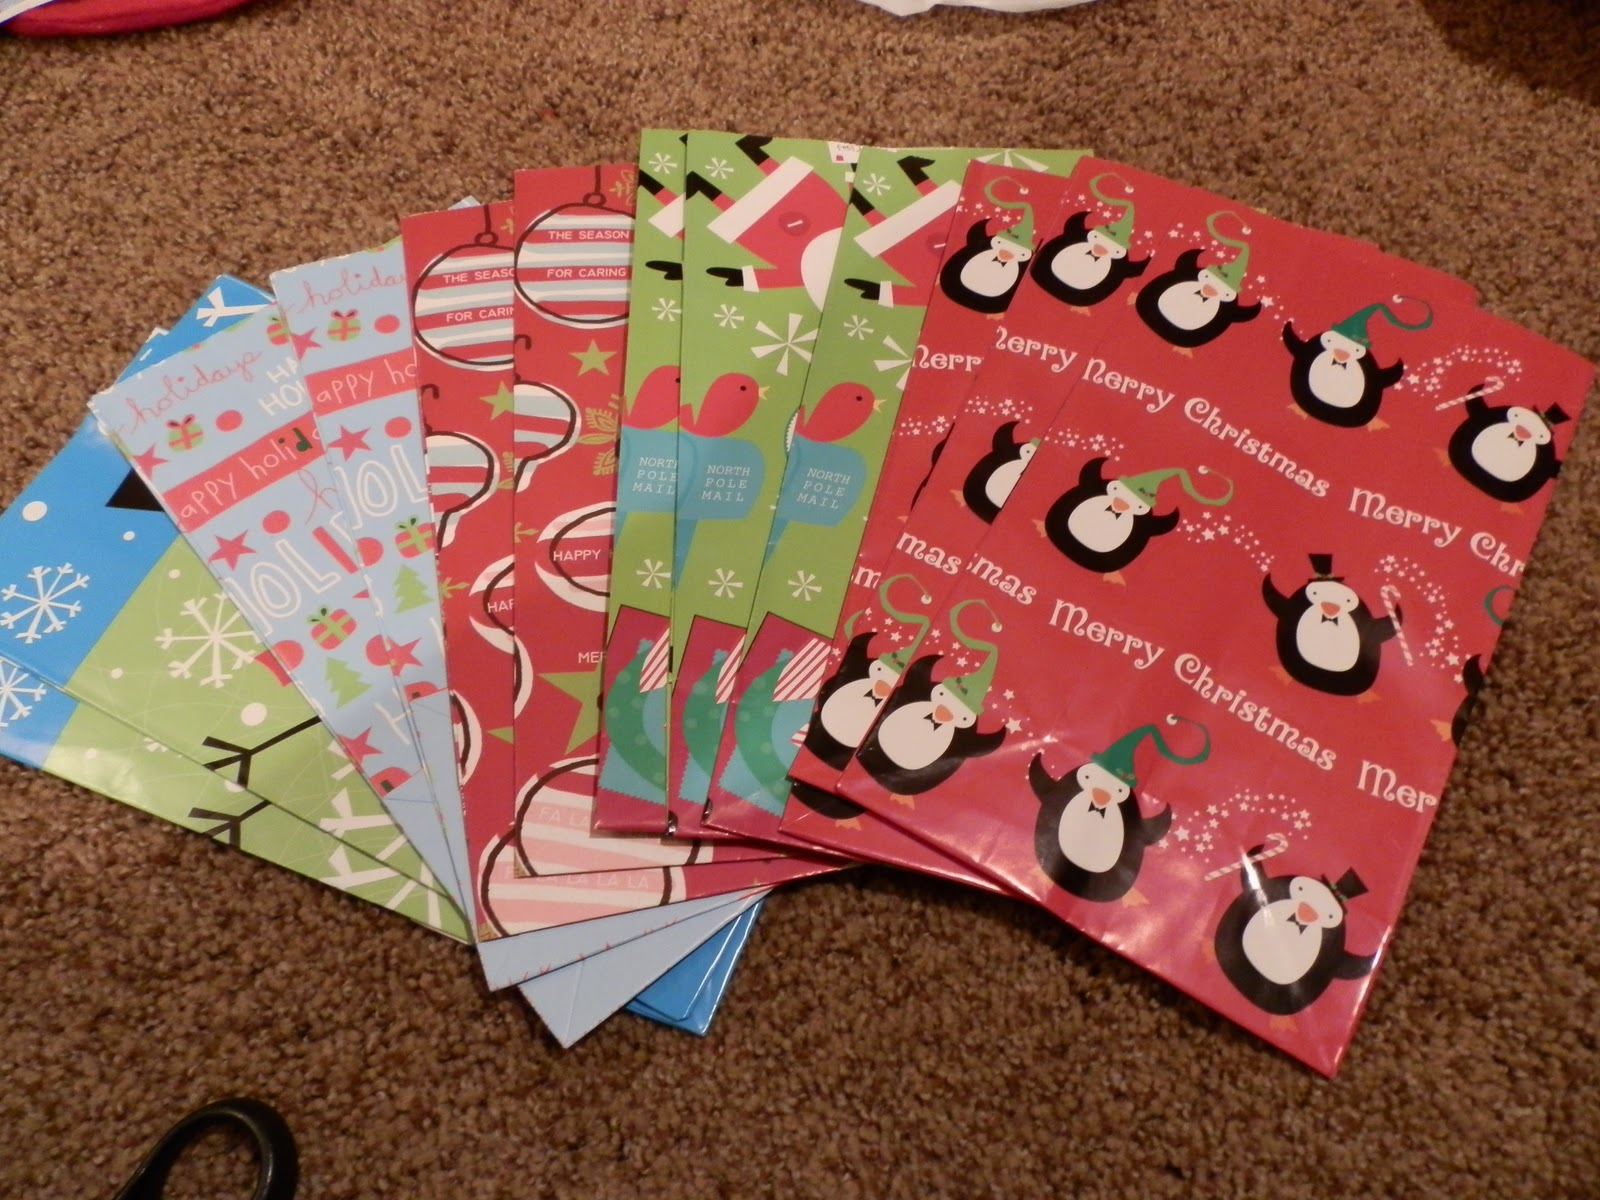 Prepared lds family christmas gifts for my missionary november 16 2012 negle Images